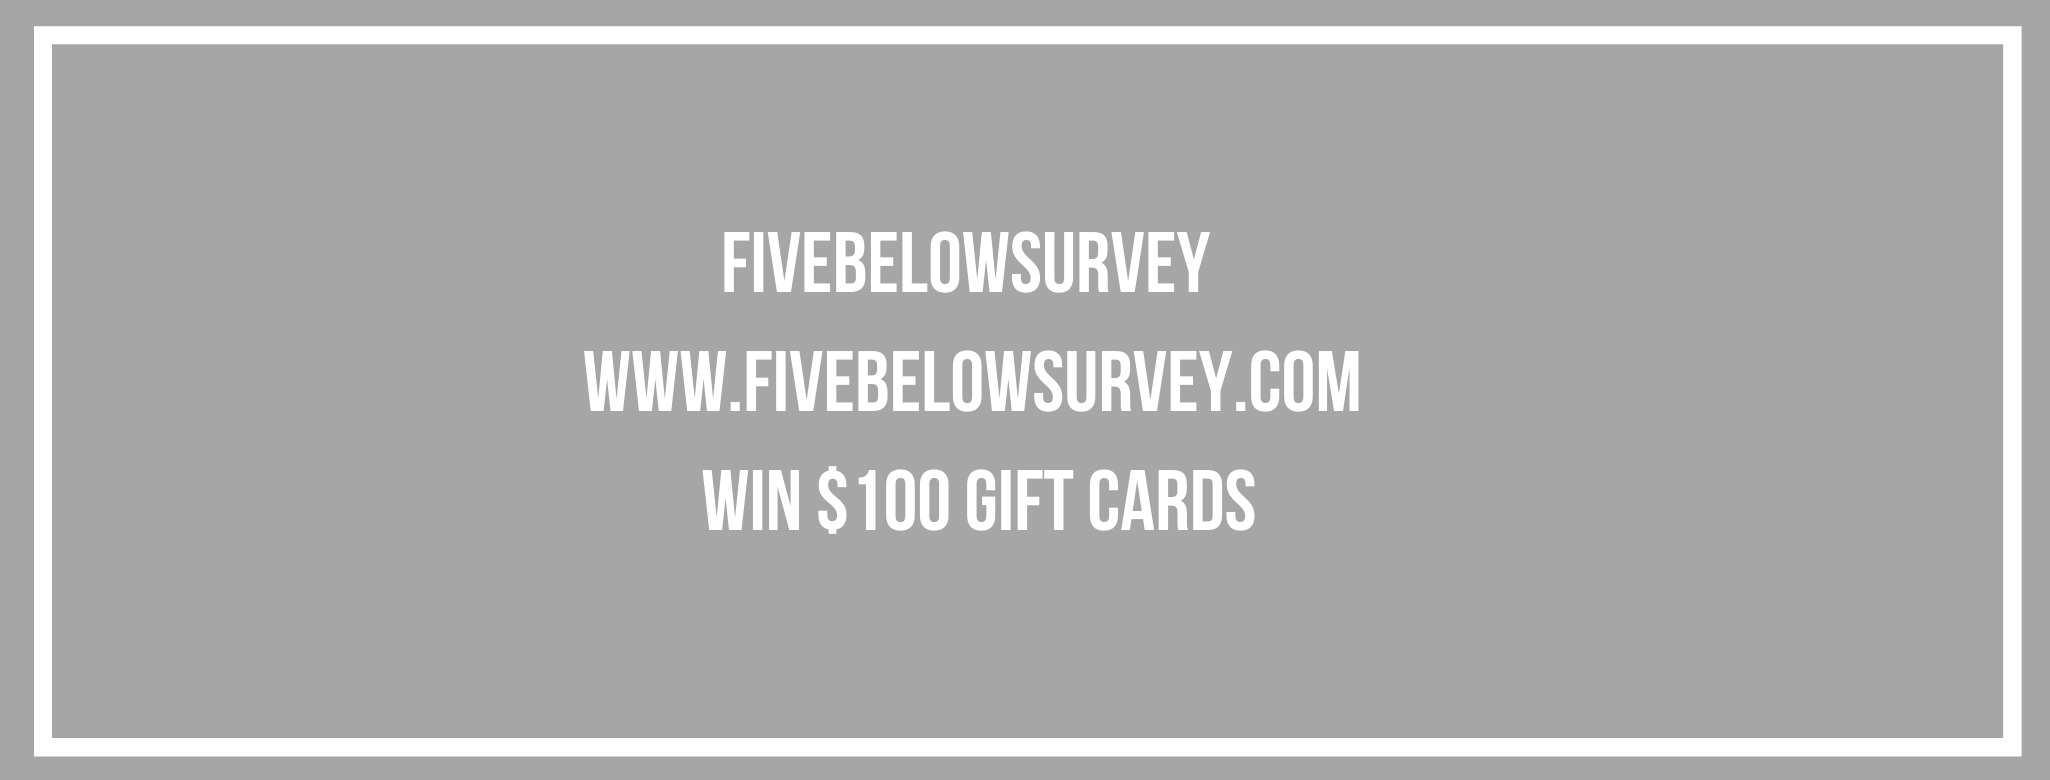 www five below com survey